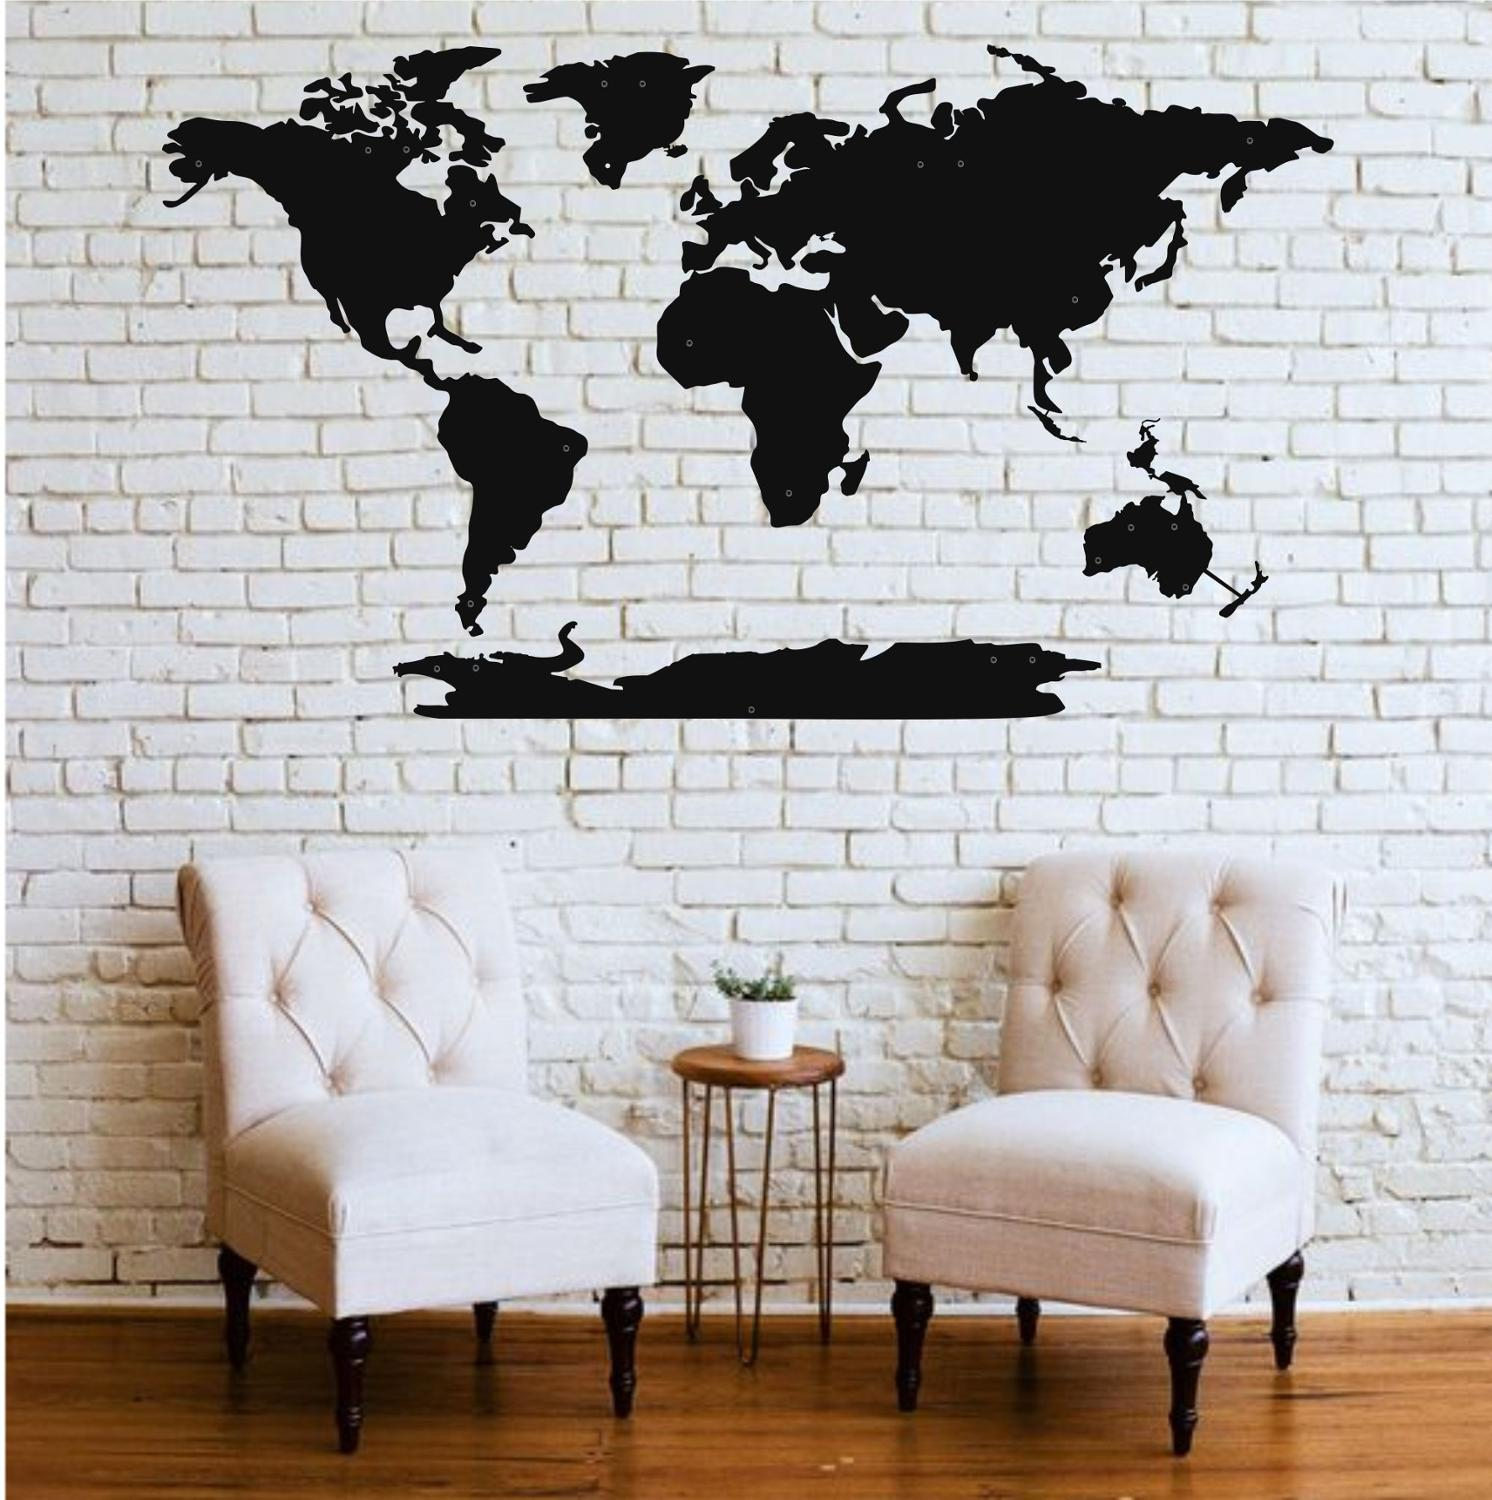 Metal Wall Art Metal World Map Continents 5 Pieces Metal Wall Decor Home Living Room Decoration Metal Sign Wall Silhouette Plaques Signs Aliexpress